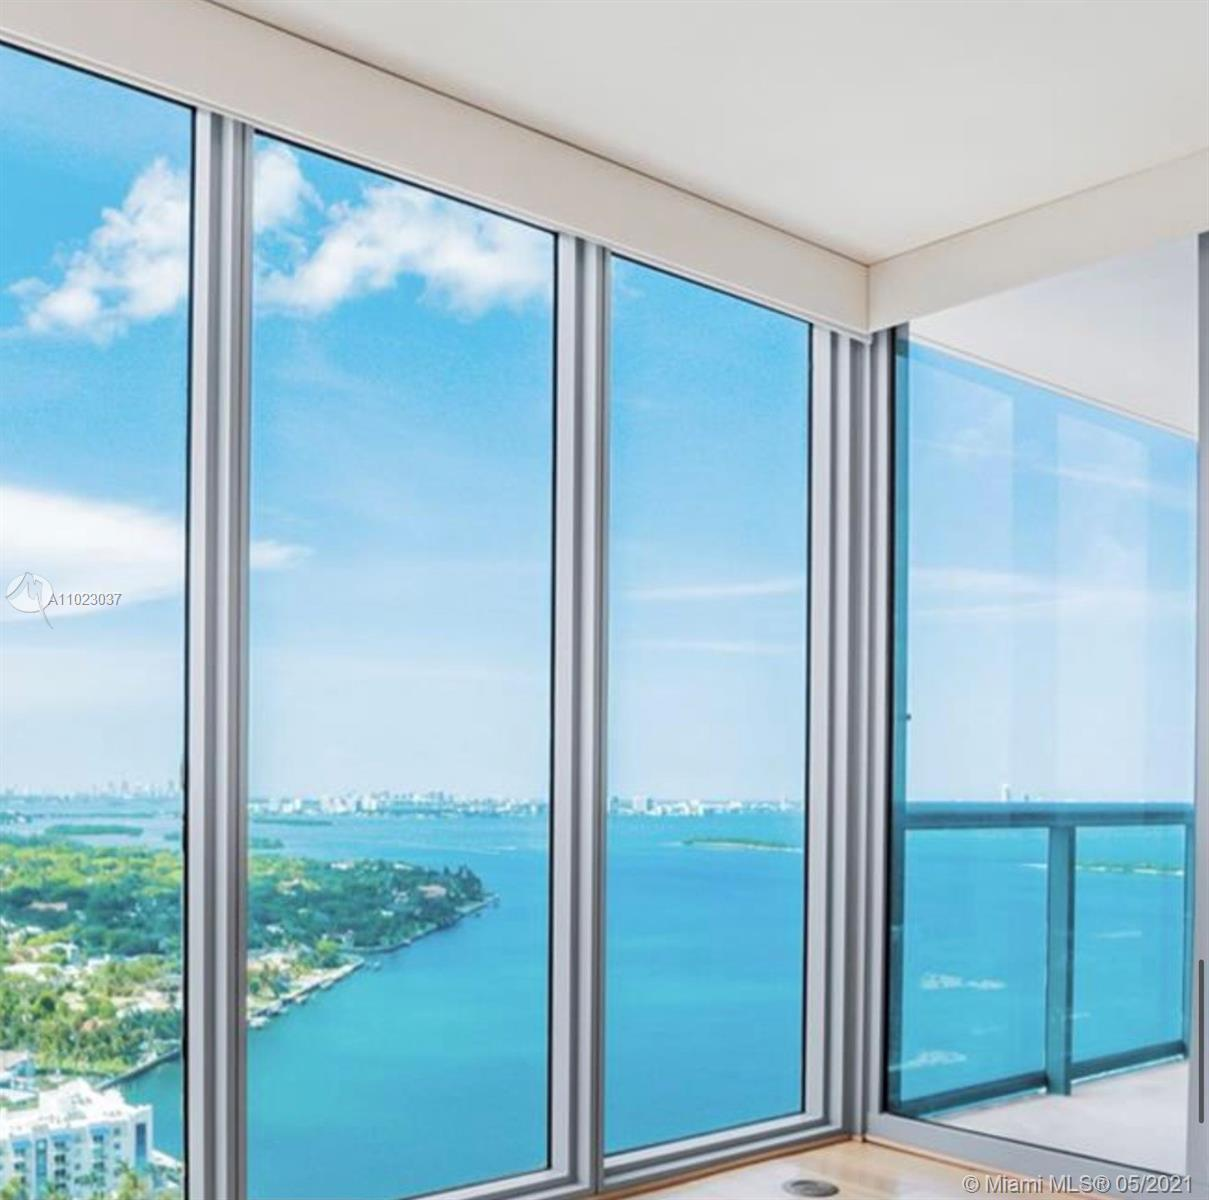 Endless bay and city views. Ready to move 2 bedroom/ 2.5 bath. Updated kitchen with stainless steel